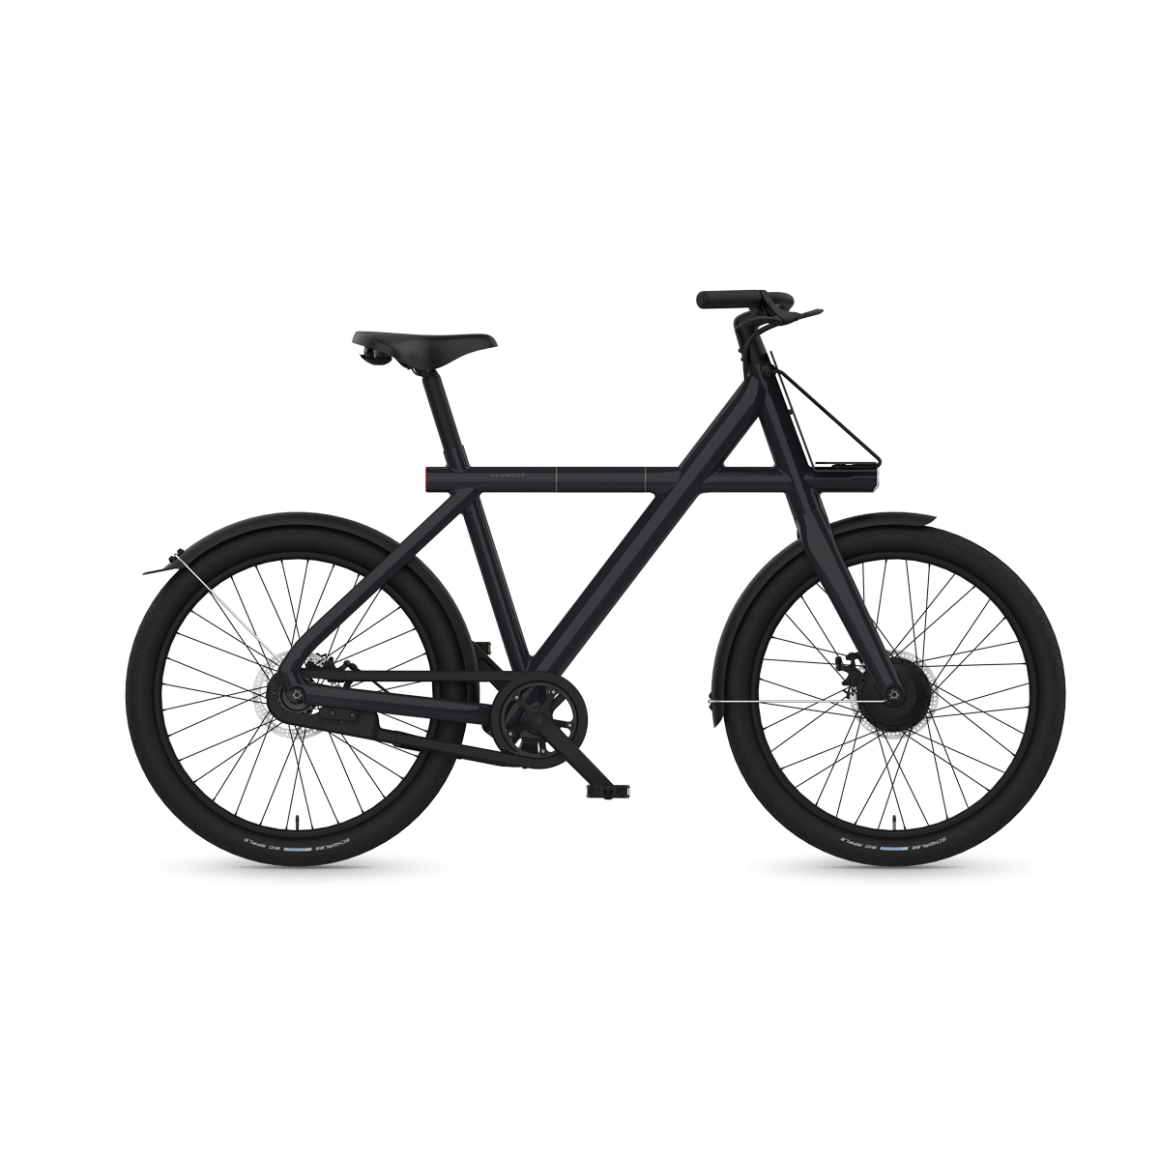 Vanmoof S2 and X2 electric bikes 2